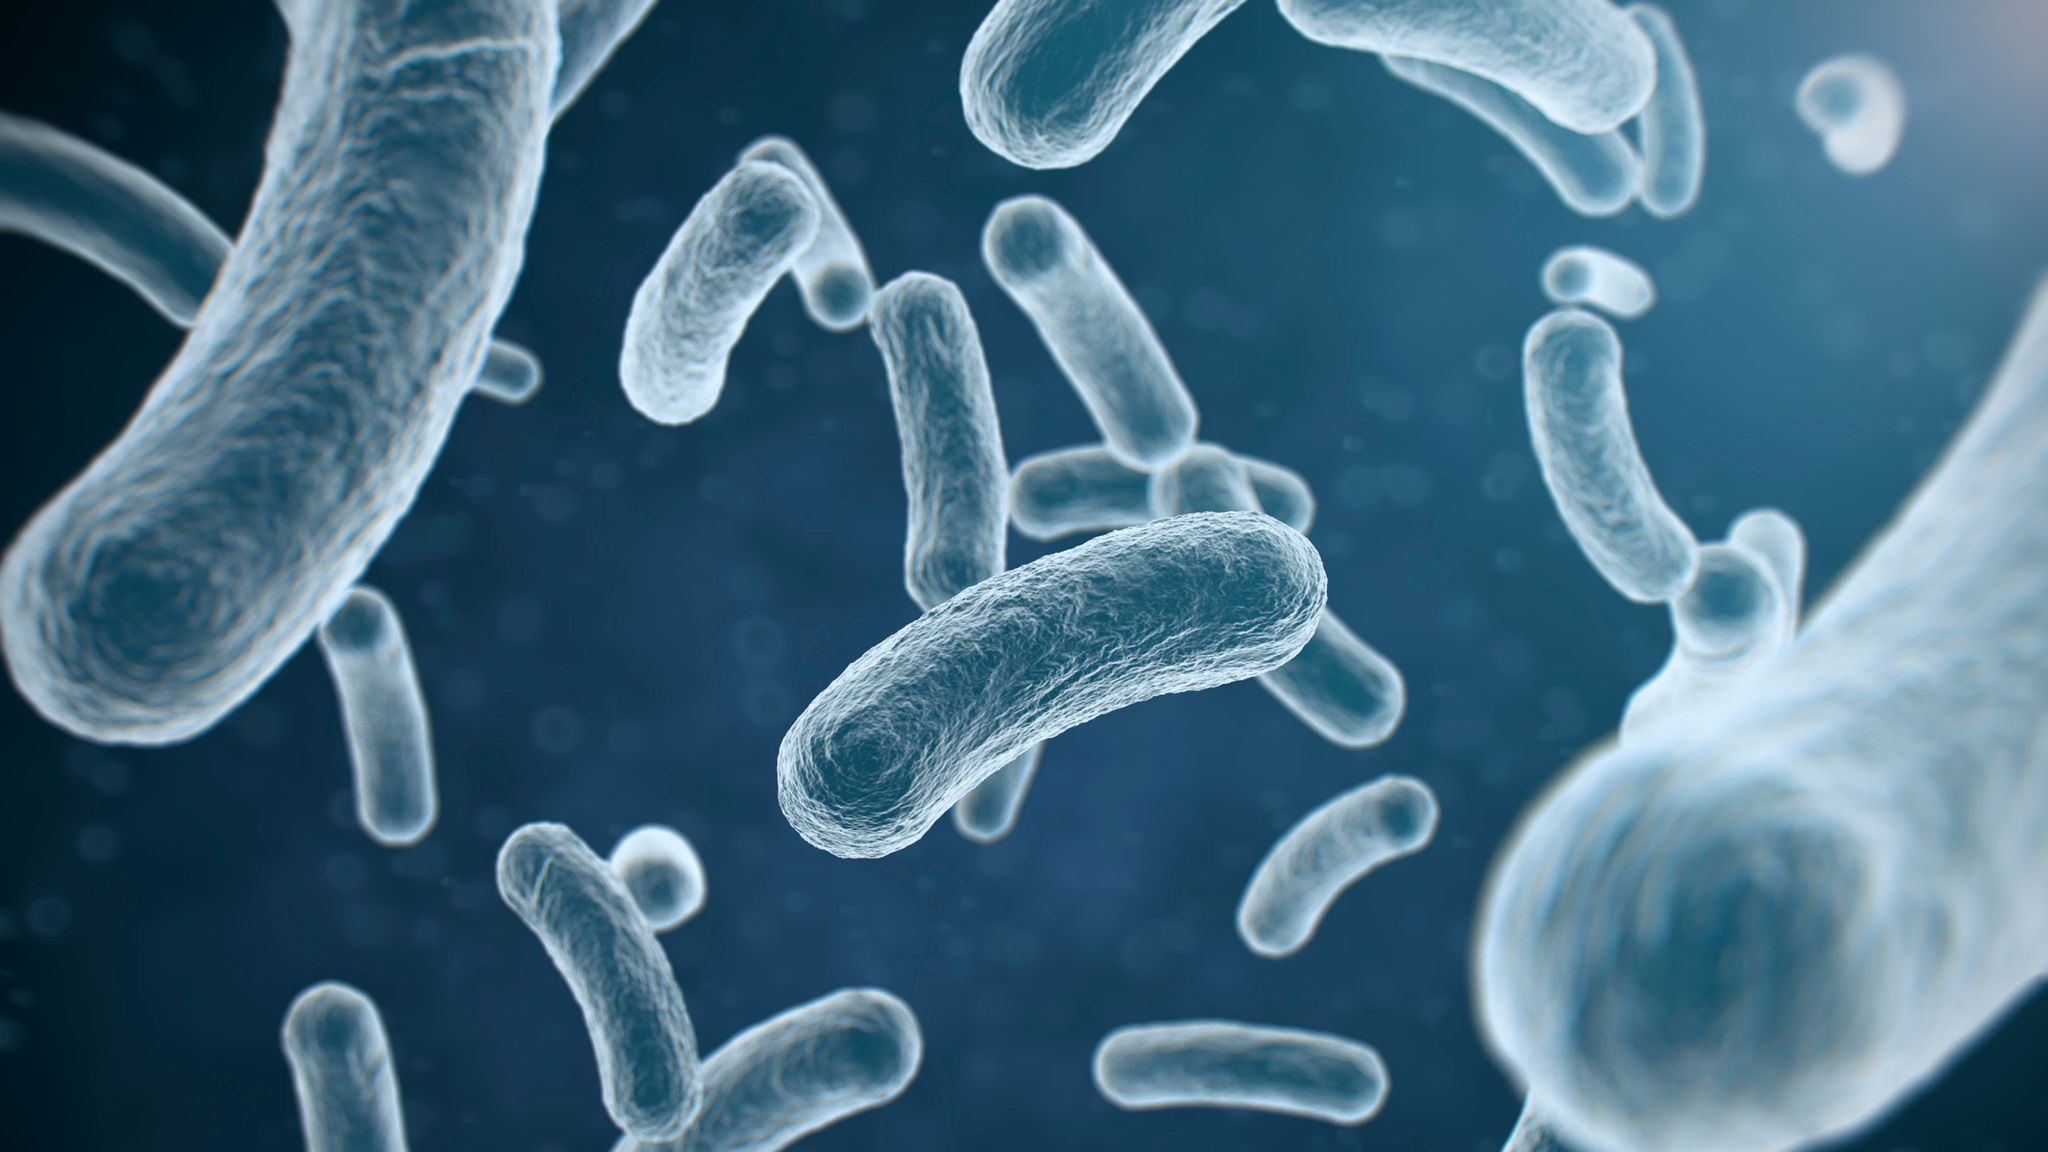 Poor toilet hygiene is bigger E.coli risk than uncooked food - research